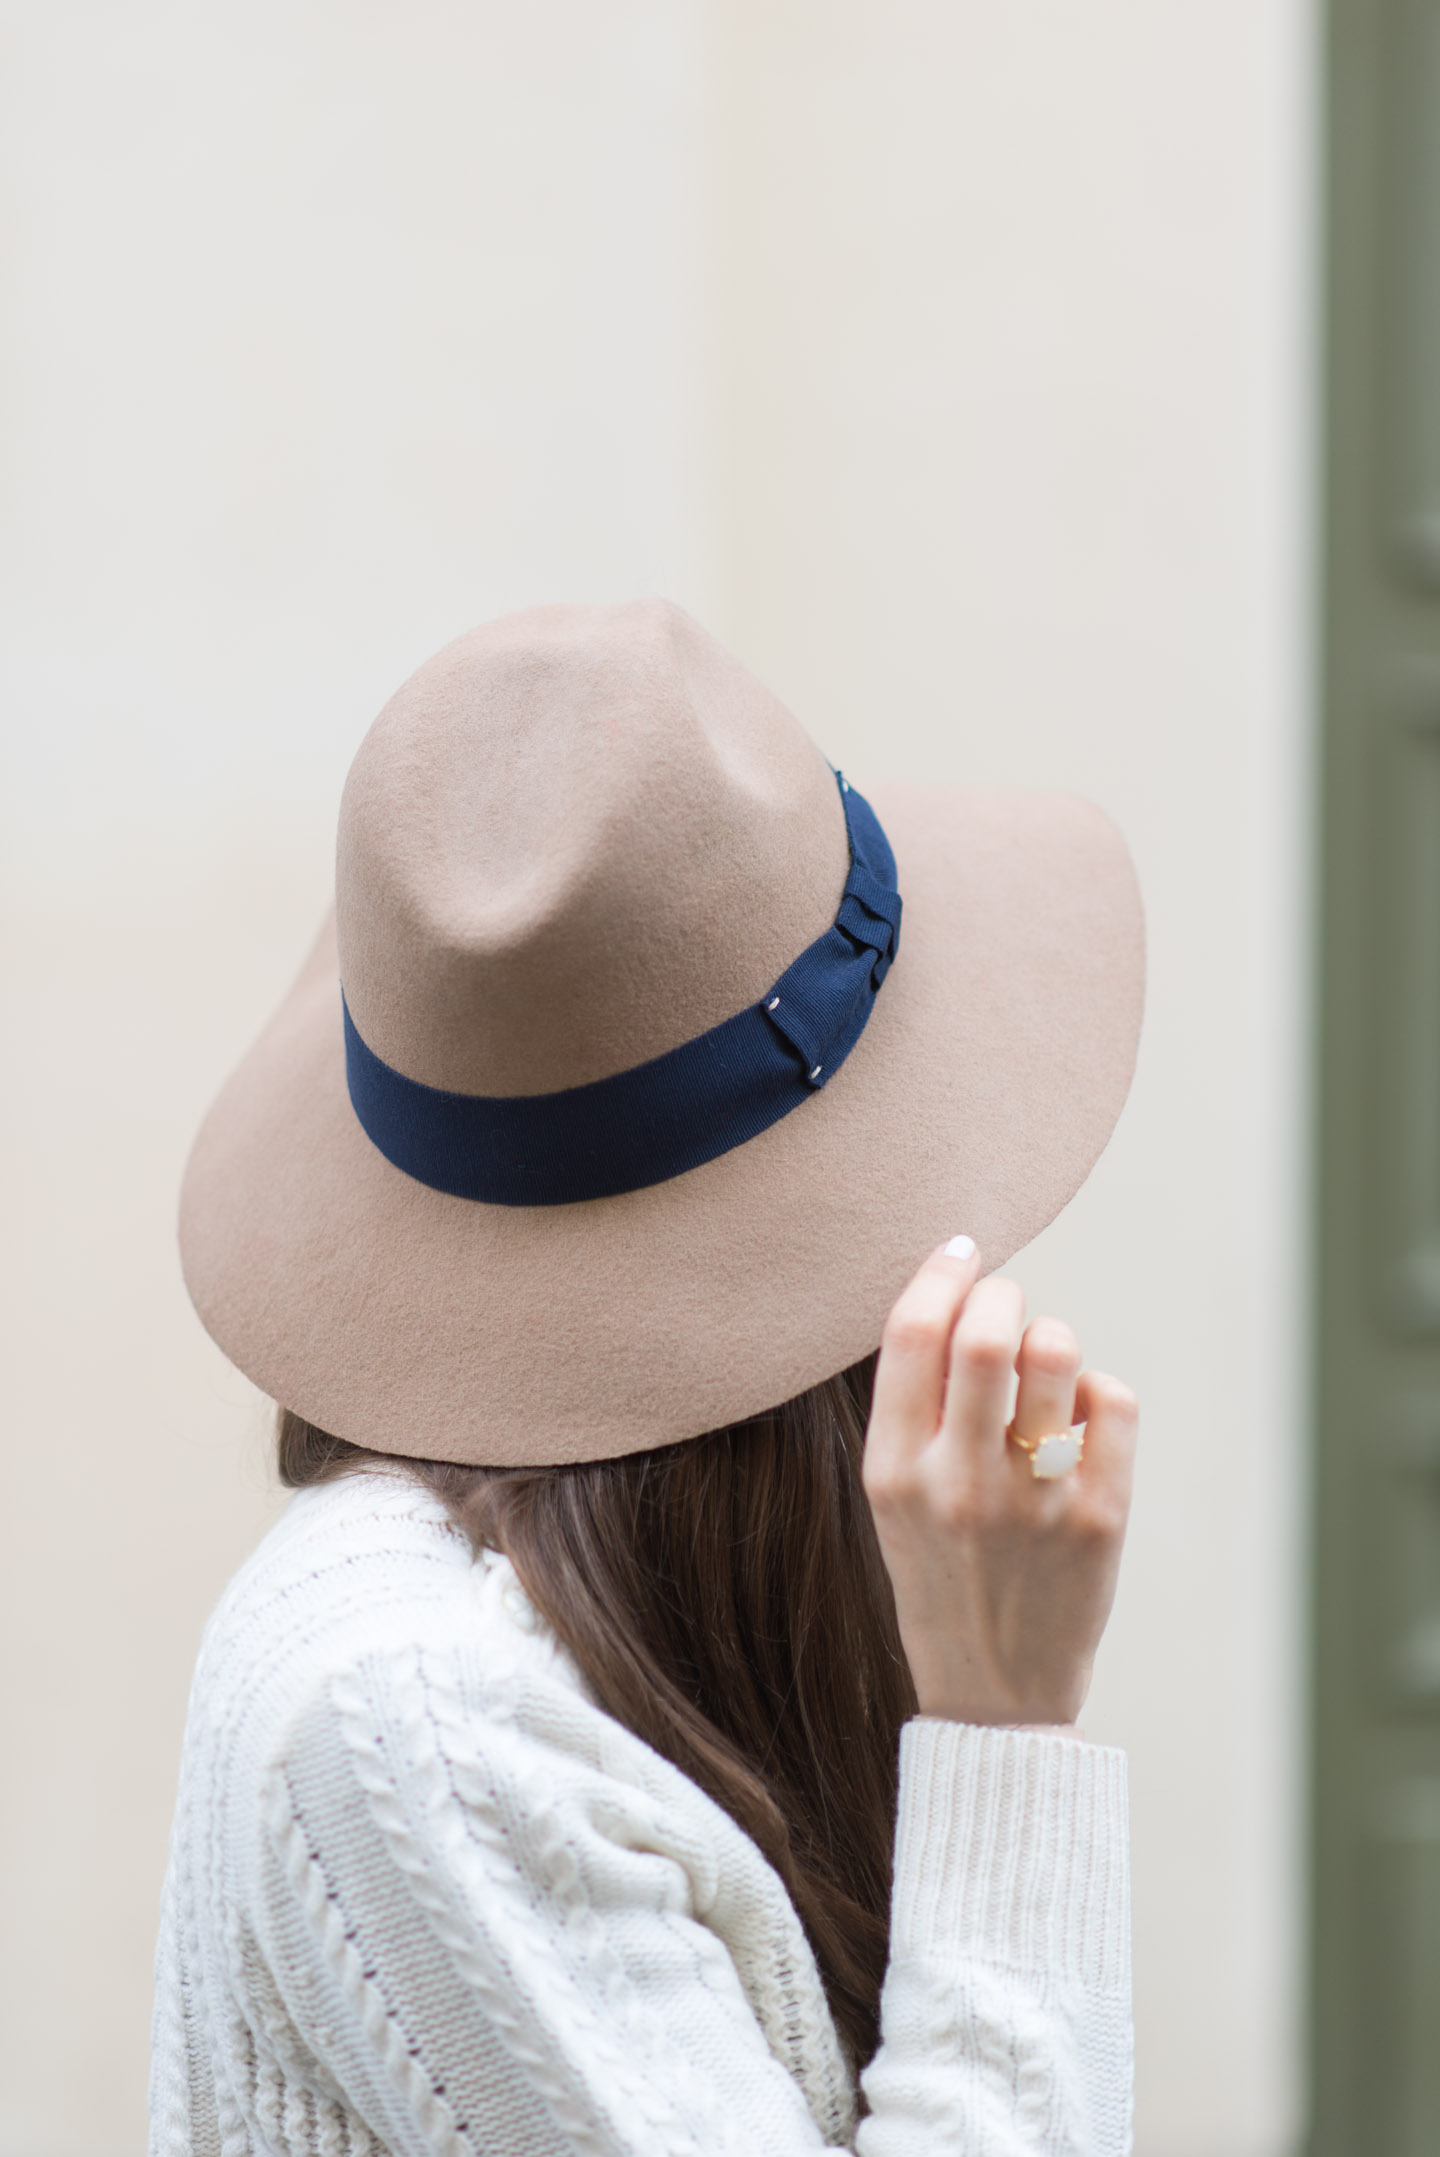 Blog-Mode-And-The-City-Lifestyle-Cadeaux-Noel-2015-Chapeau-Galeries-Lafayette